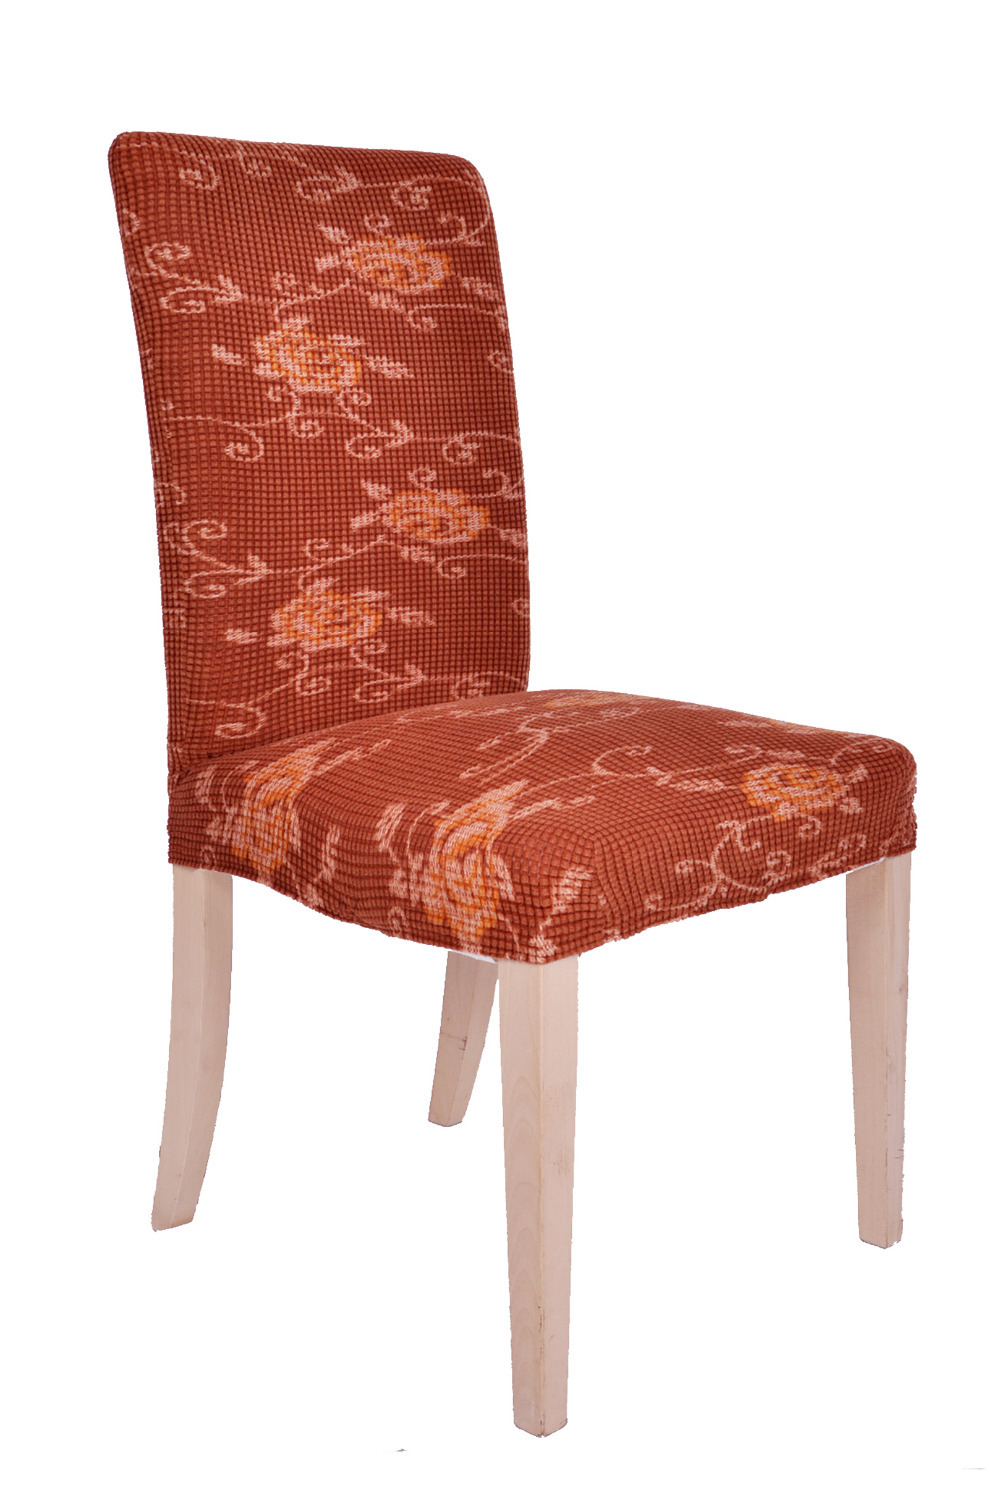 Dining Room Jacquard Poyester Spandex Fabric Printed Chair